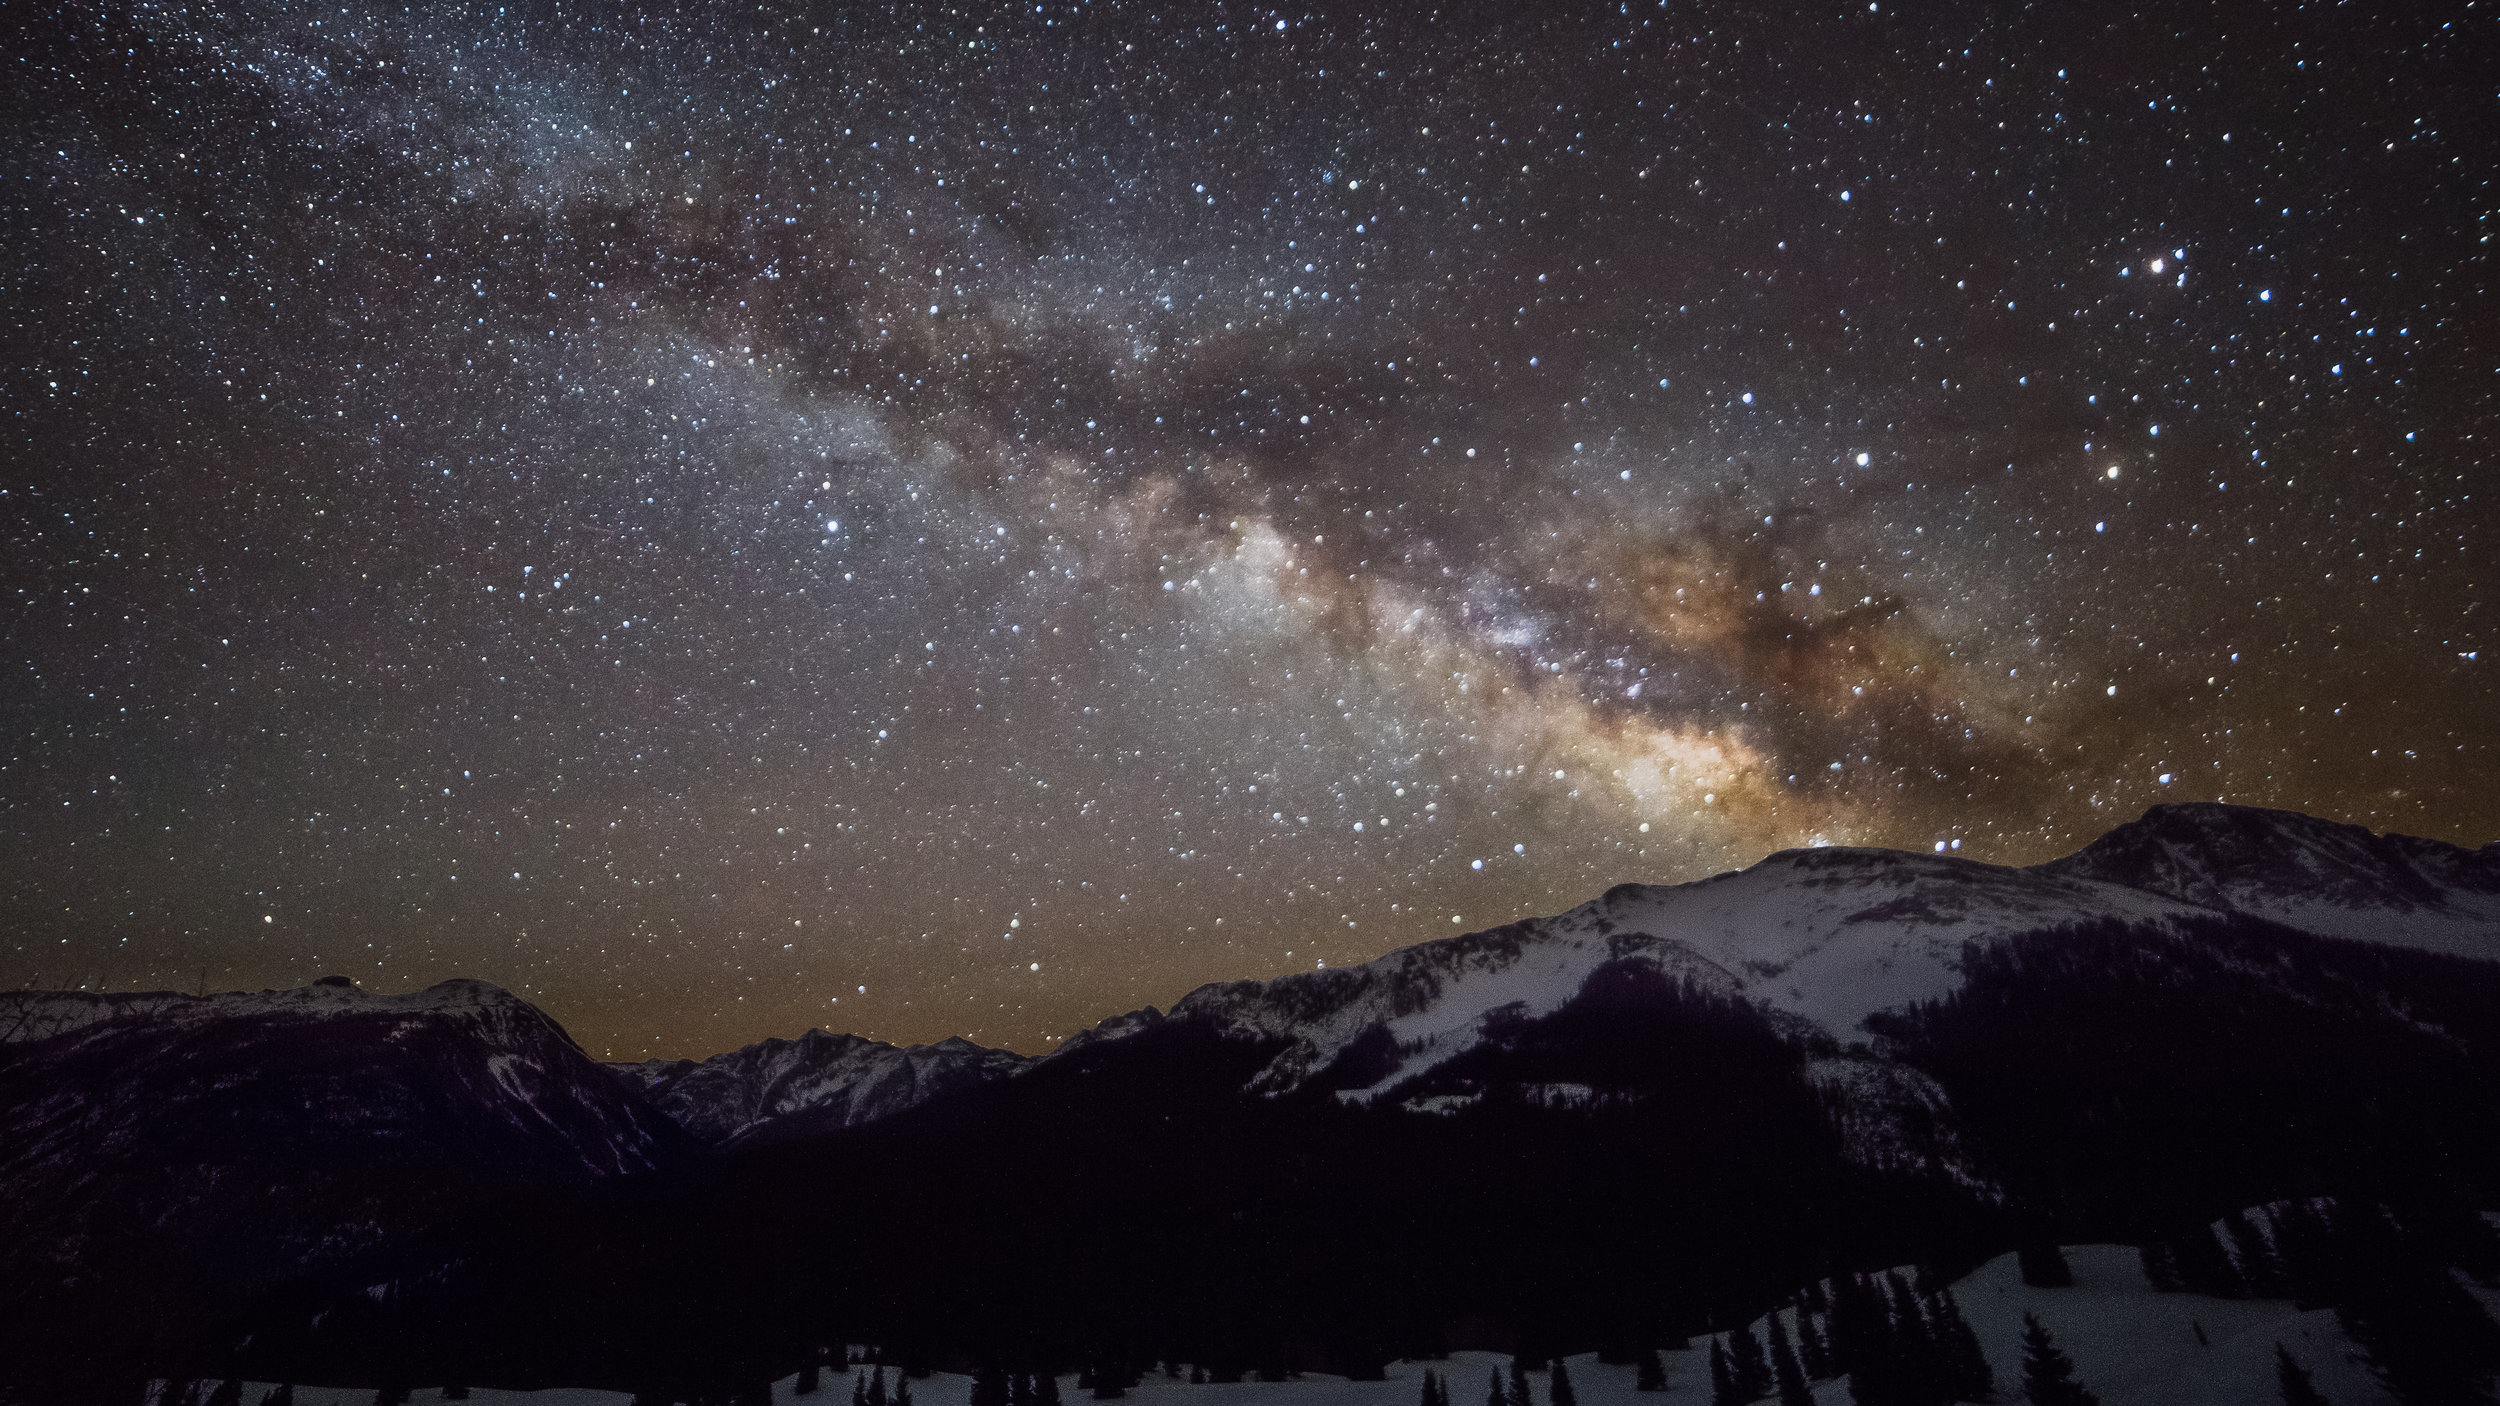 To the beautiful night skies - Come see the world through photographer, Tony Curado's eyes!